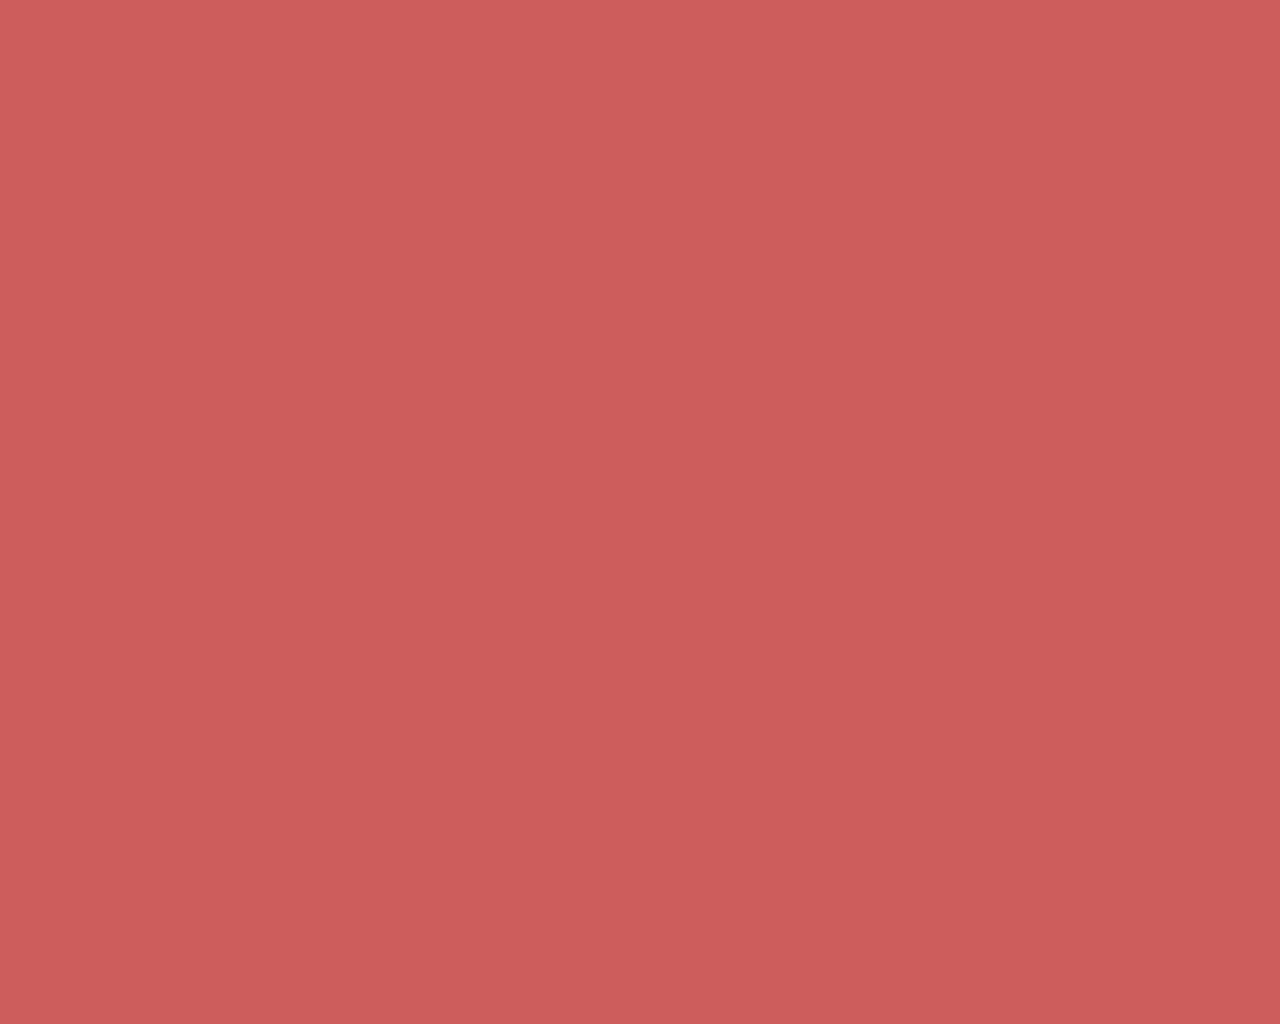 1280x1024 Indian Red Solid Color Background